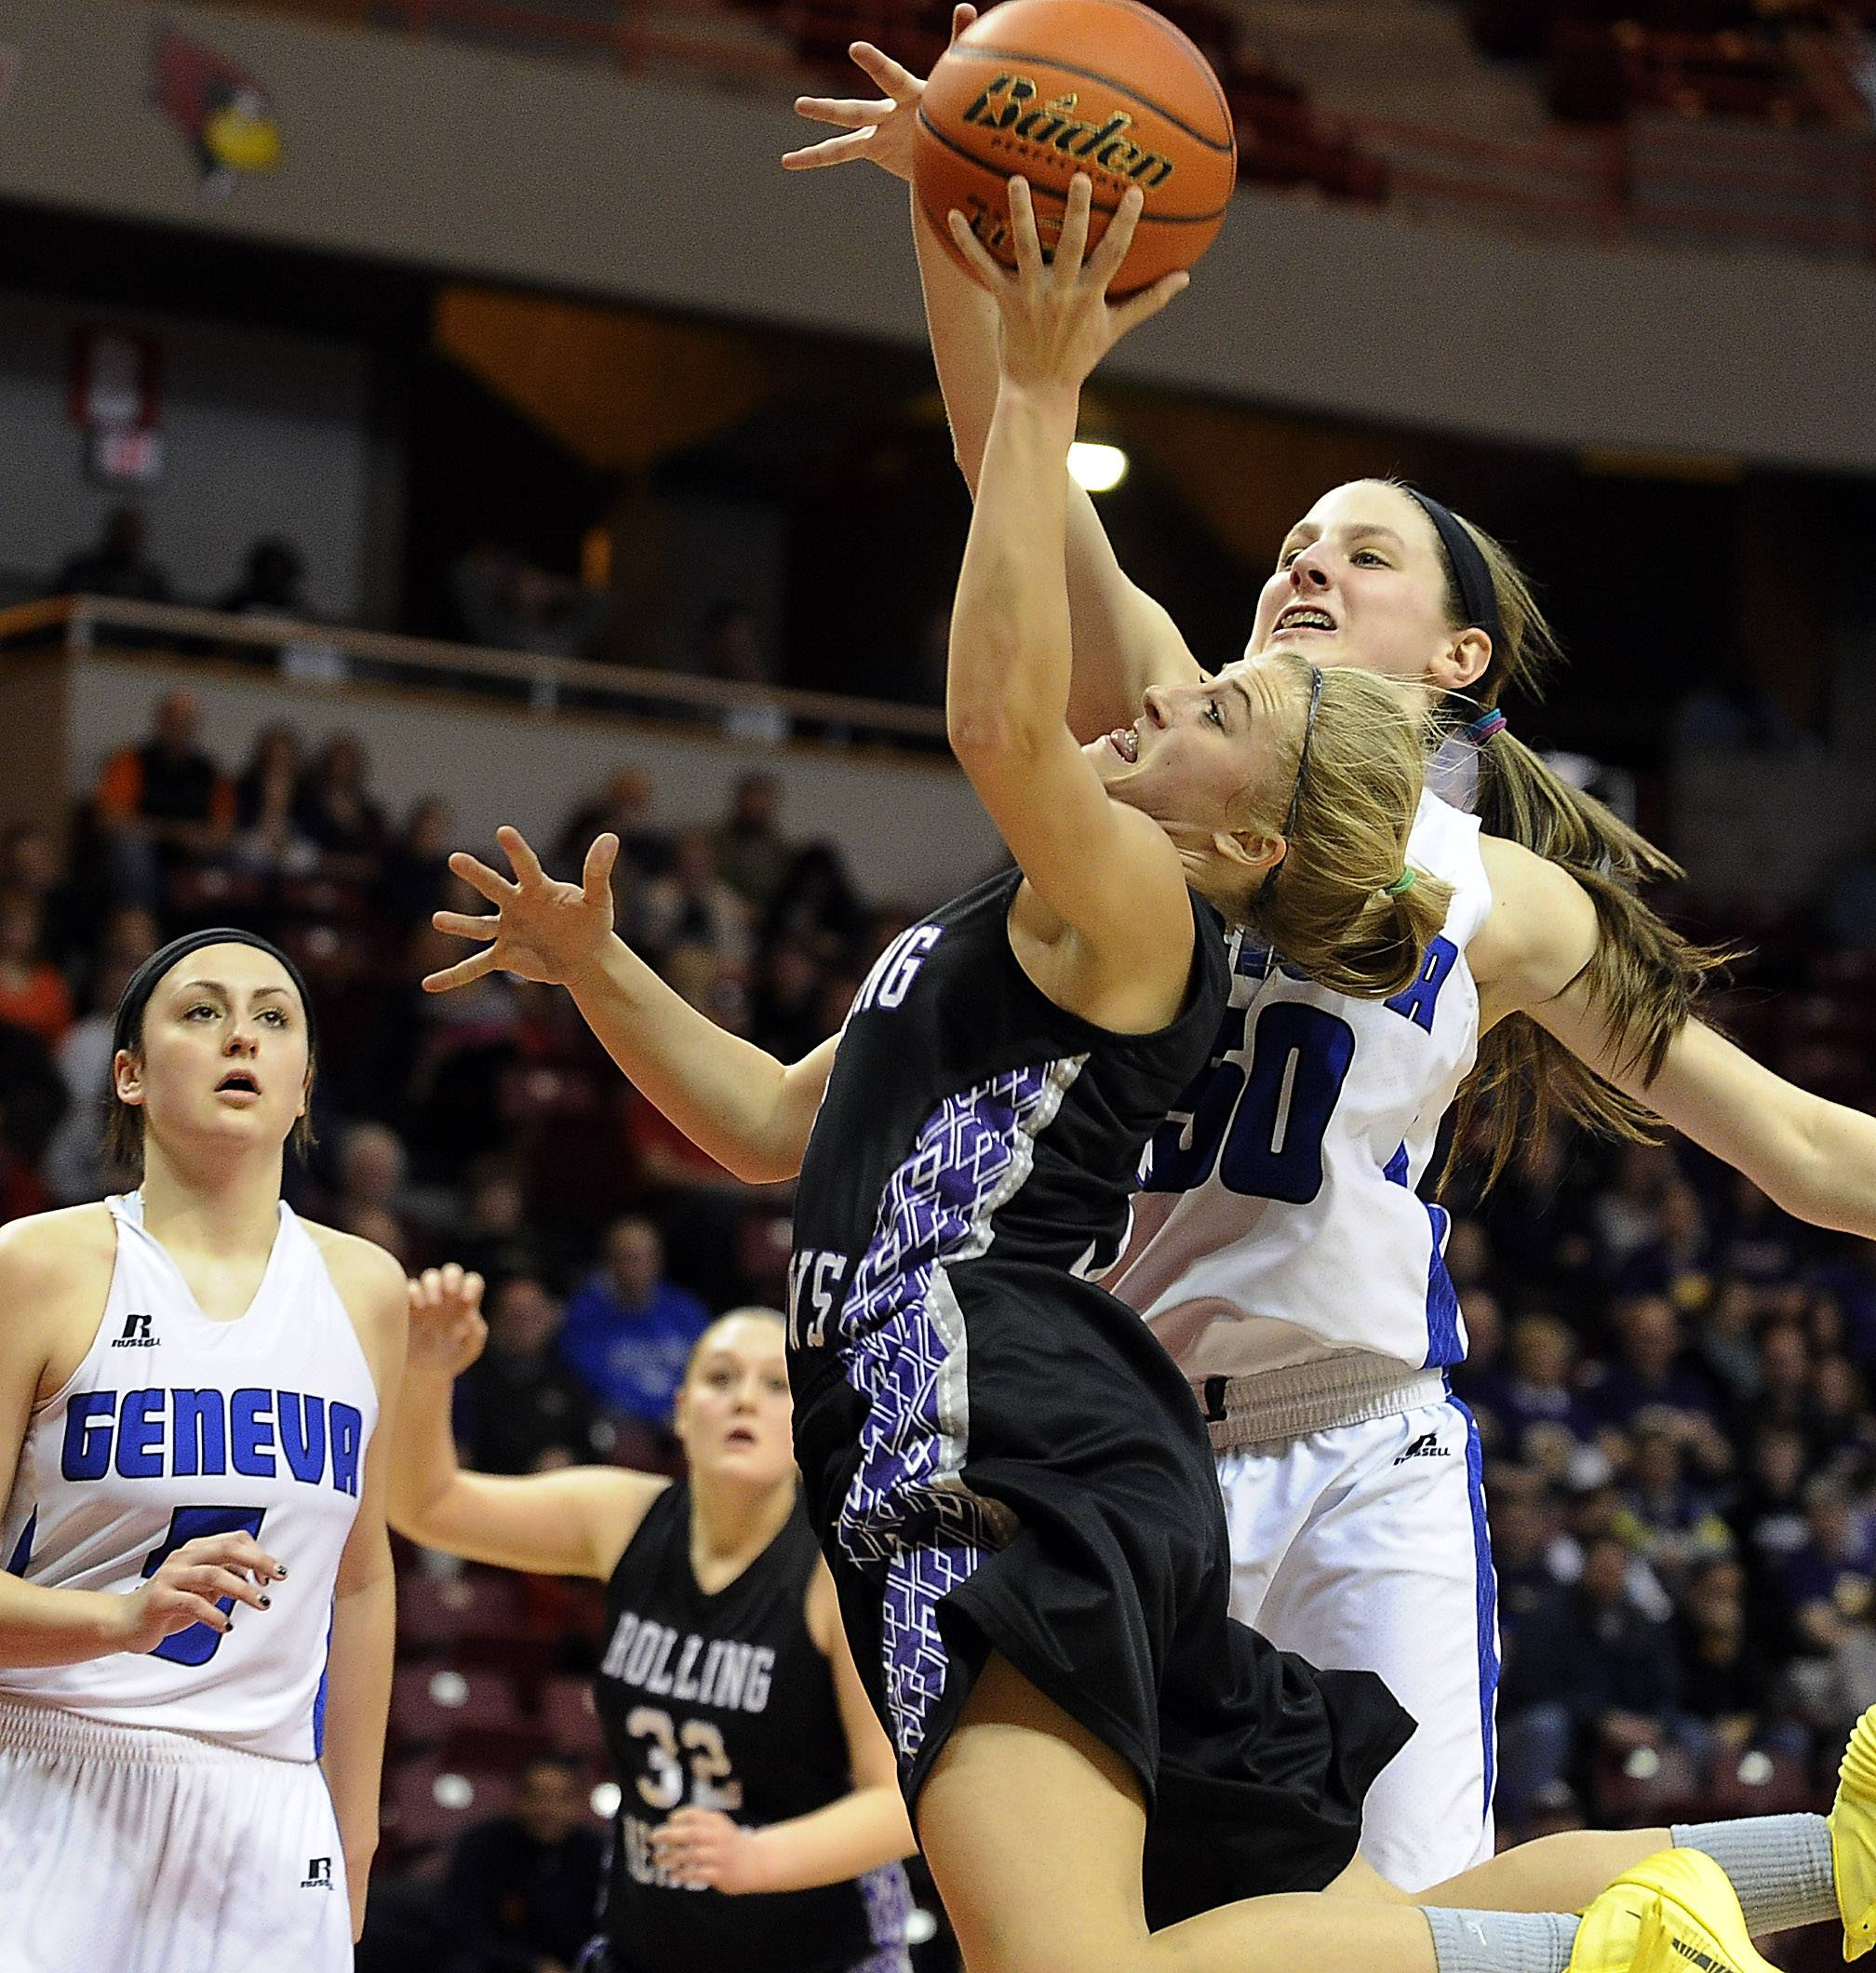 Rolling Meadows' Jackie Kemph gets to the basket but has her shot blocked by Geneva's Grace Loberg in the first half of the Class 4A state semifinals in Normal on Friday.